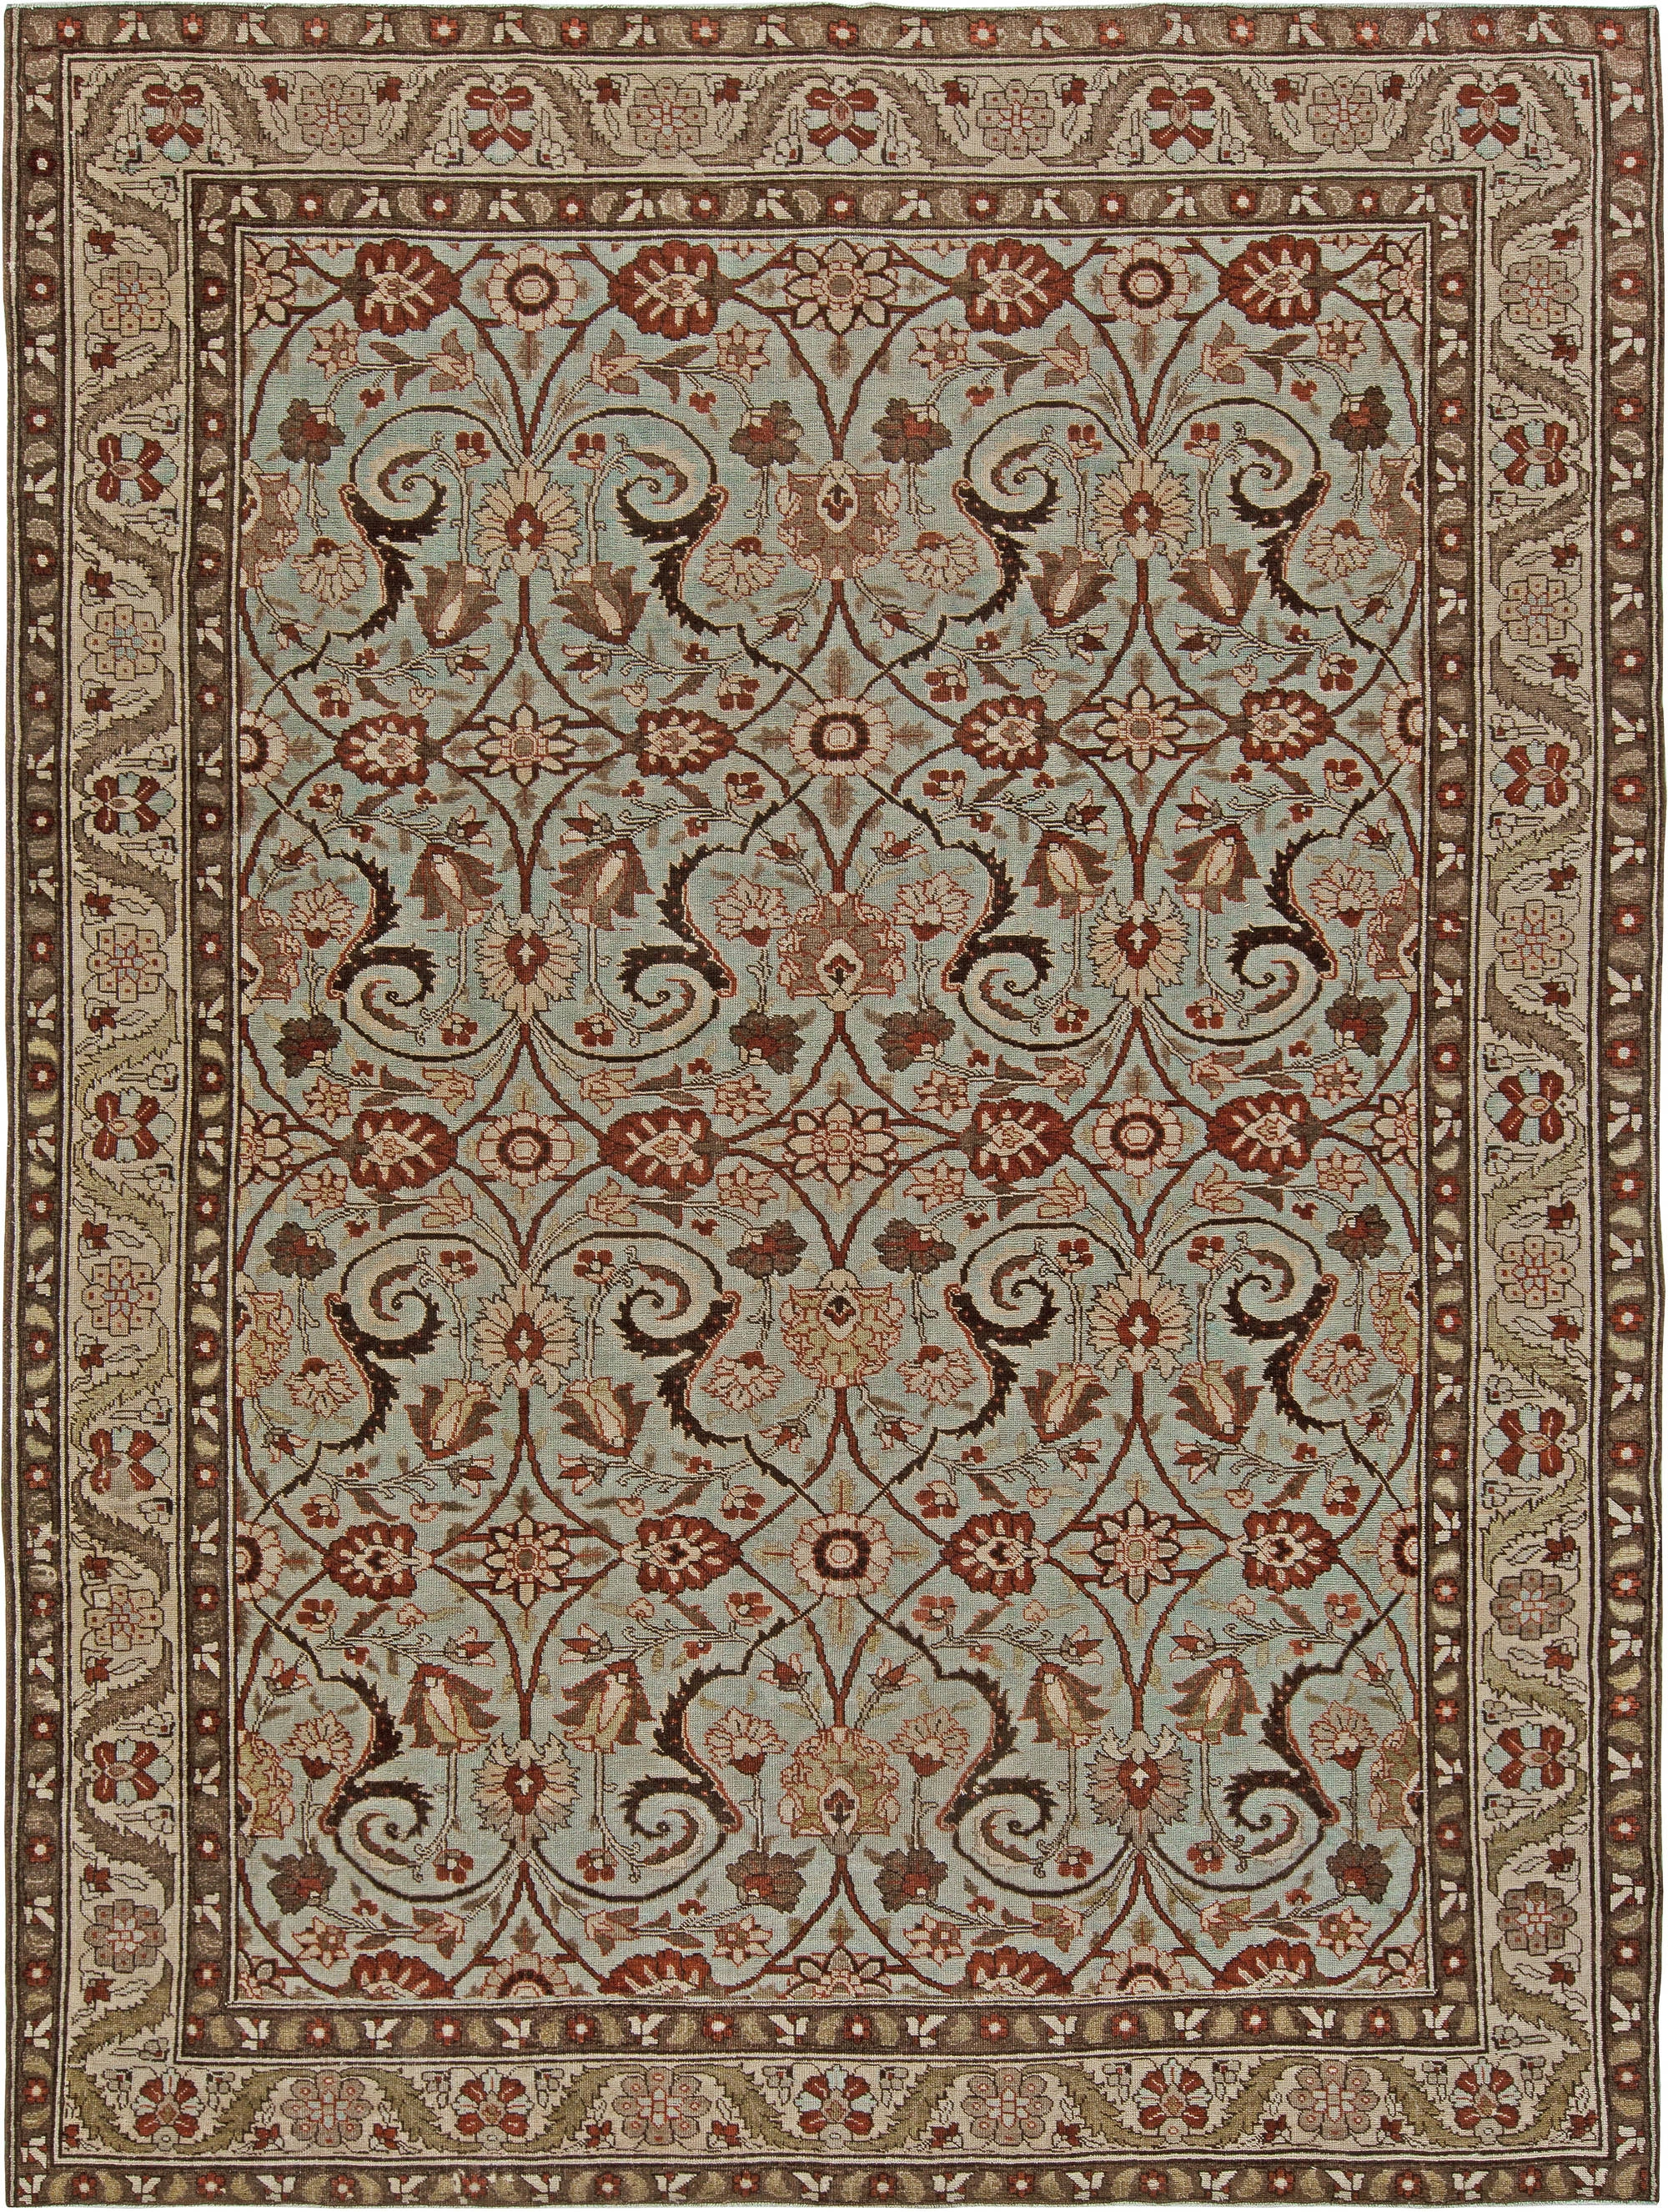 Antique Persian Rugs And Antique Oriental Rugs Pertaining To Oriental Persian Rugs (View 10 of 15)